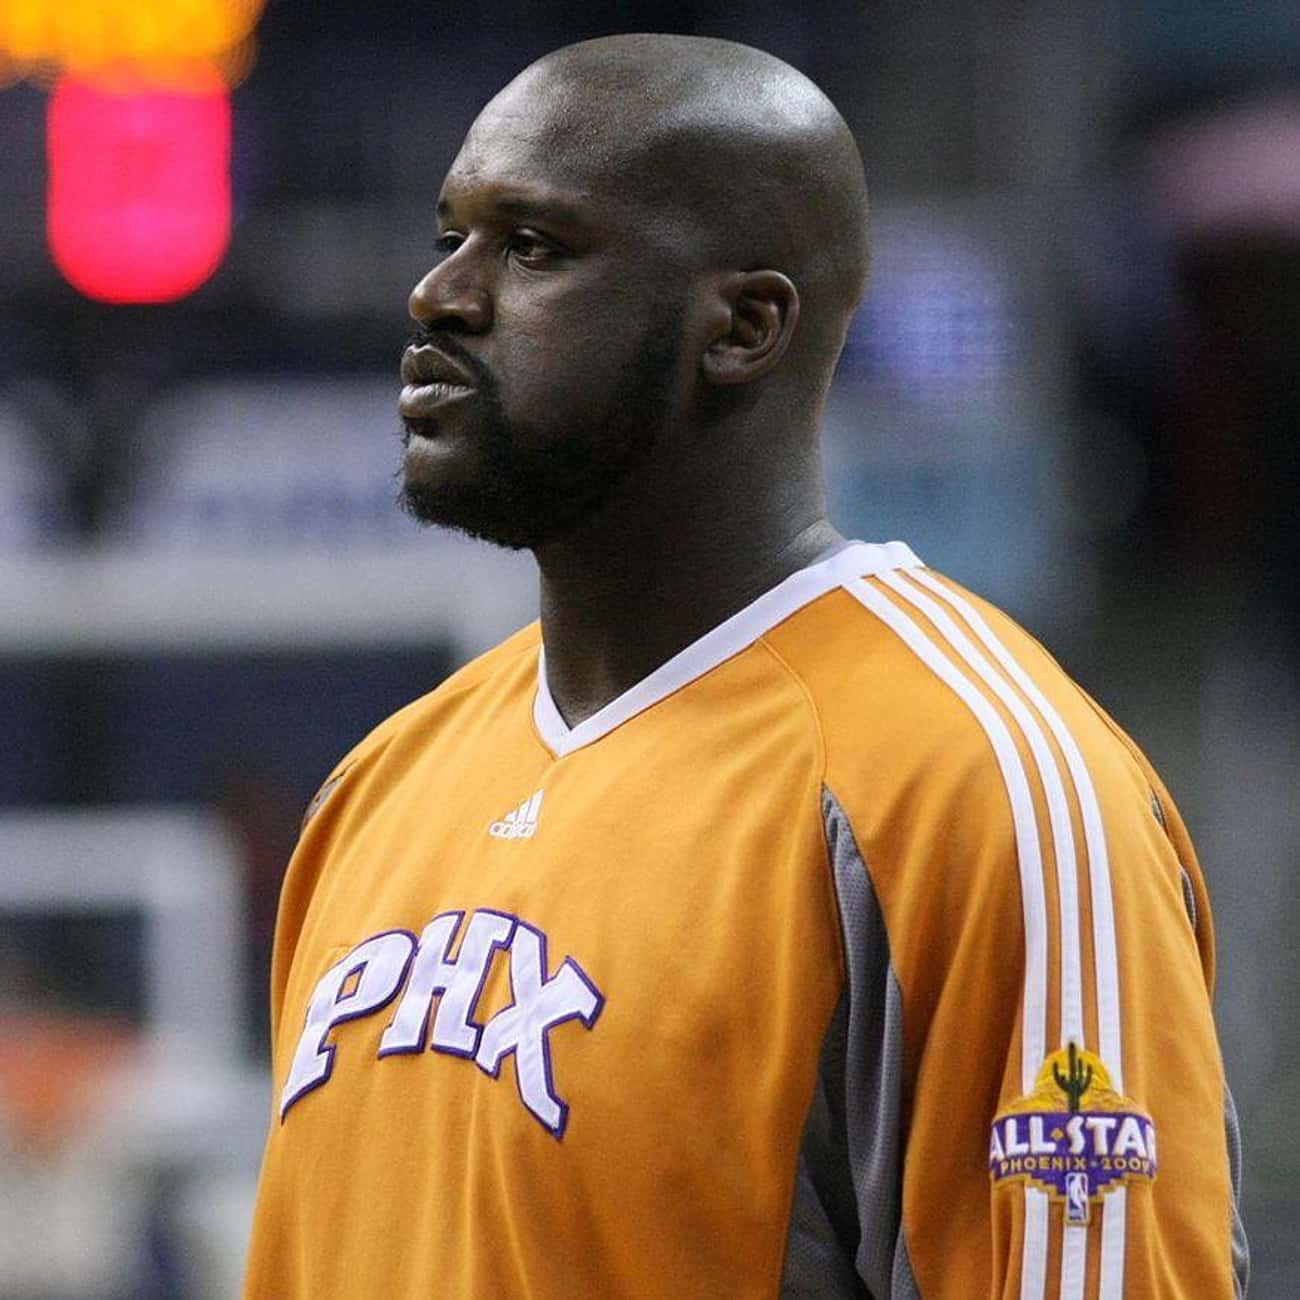 Shaquille O'Neal is listed (or ranked) 4 on the list The Best Athletes Who Wore #33